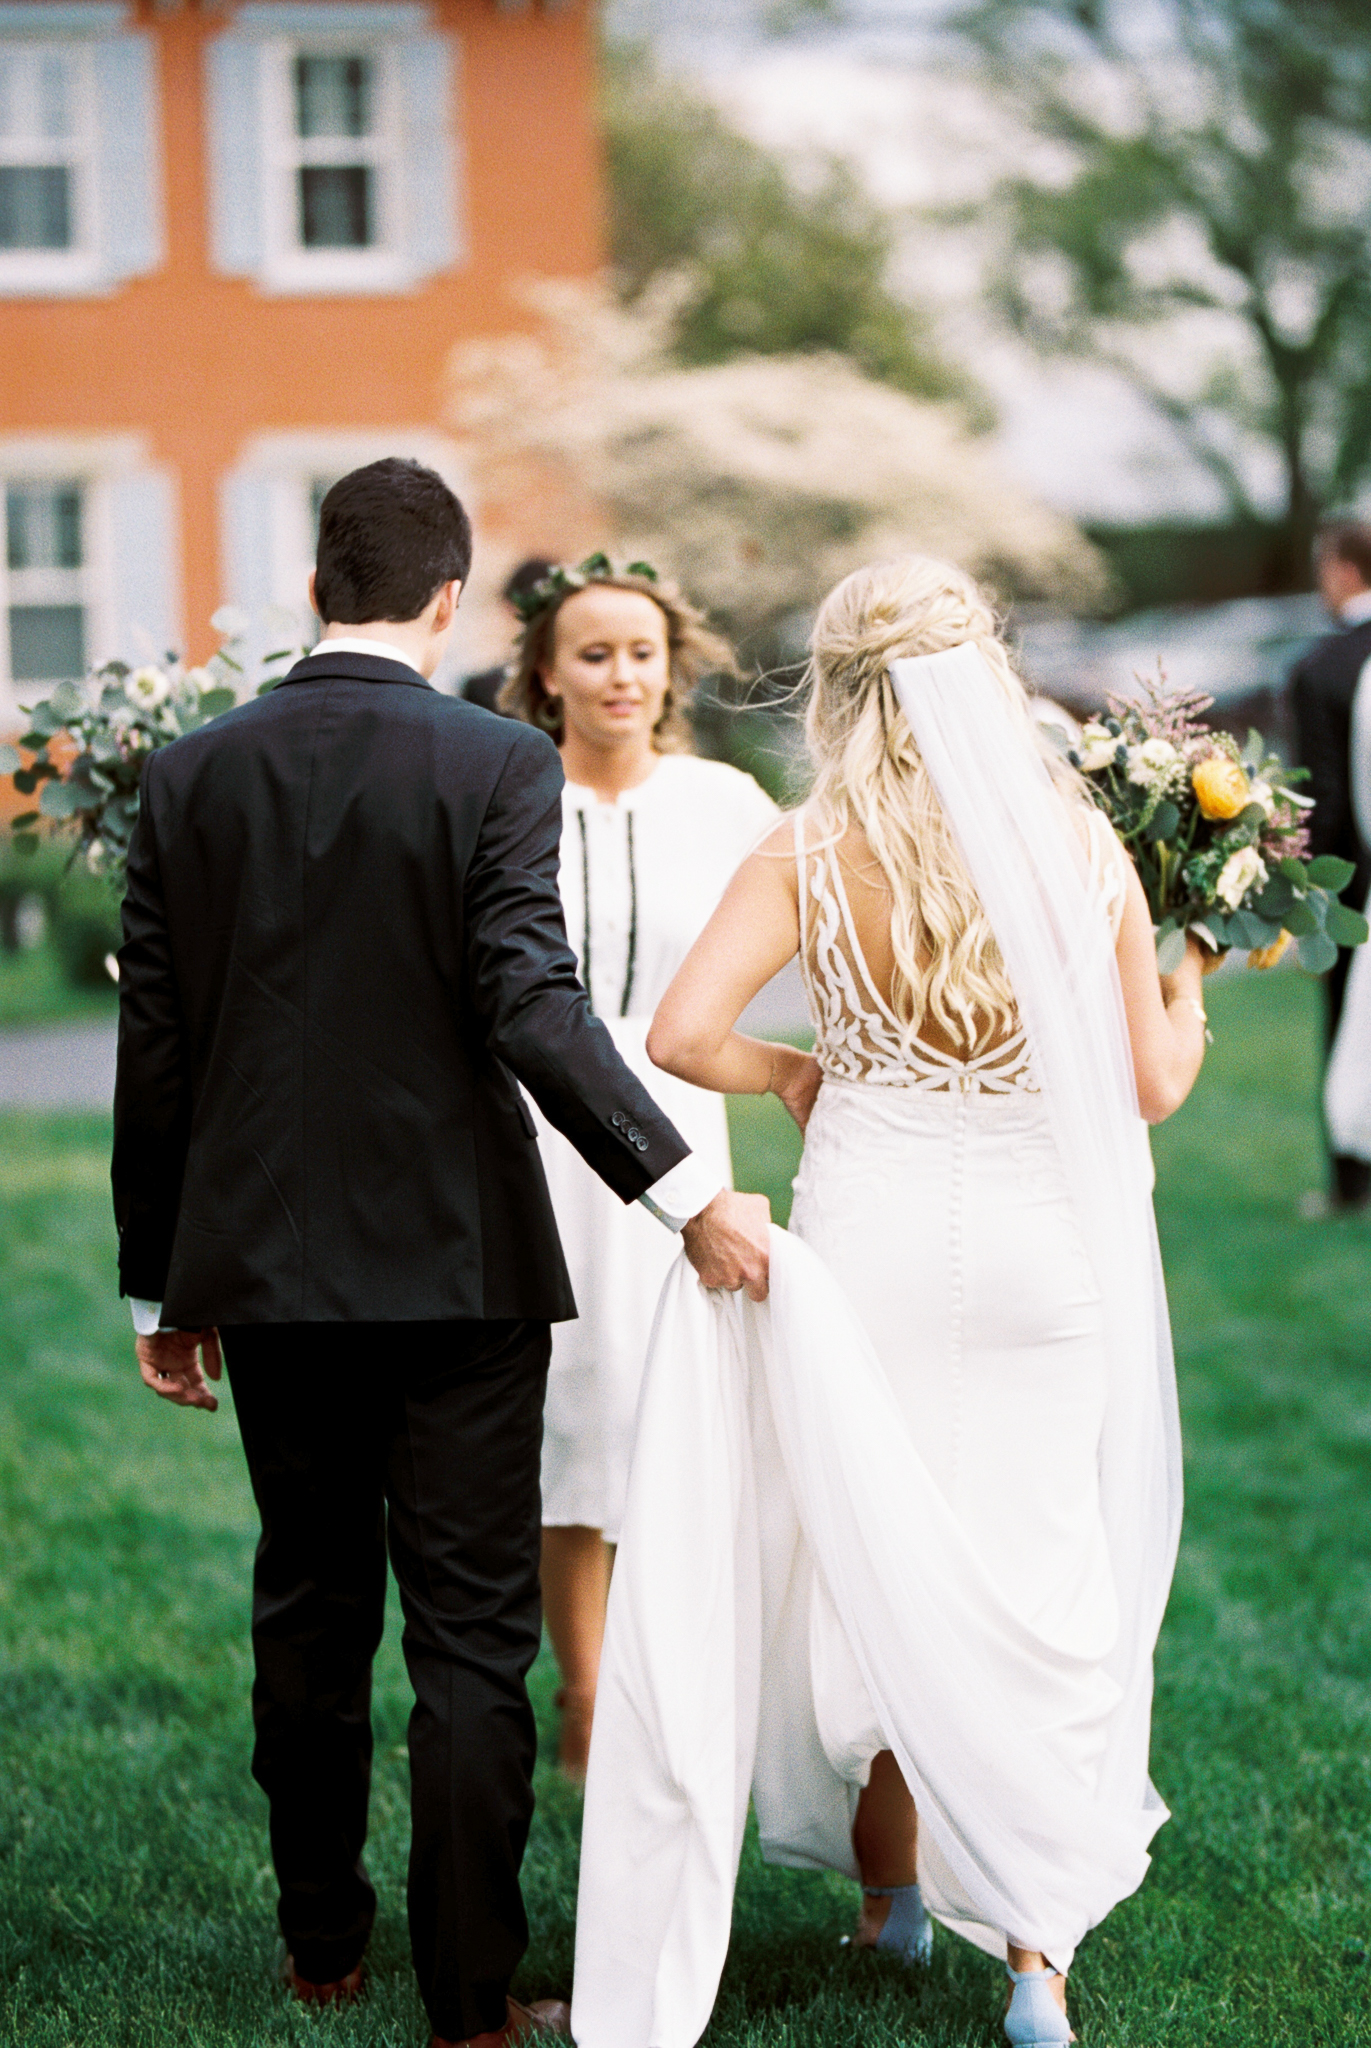 Dayton_CIncinnati_Film_Wedding_Portrait_Photographer-48.jpg